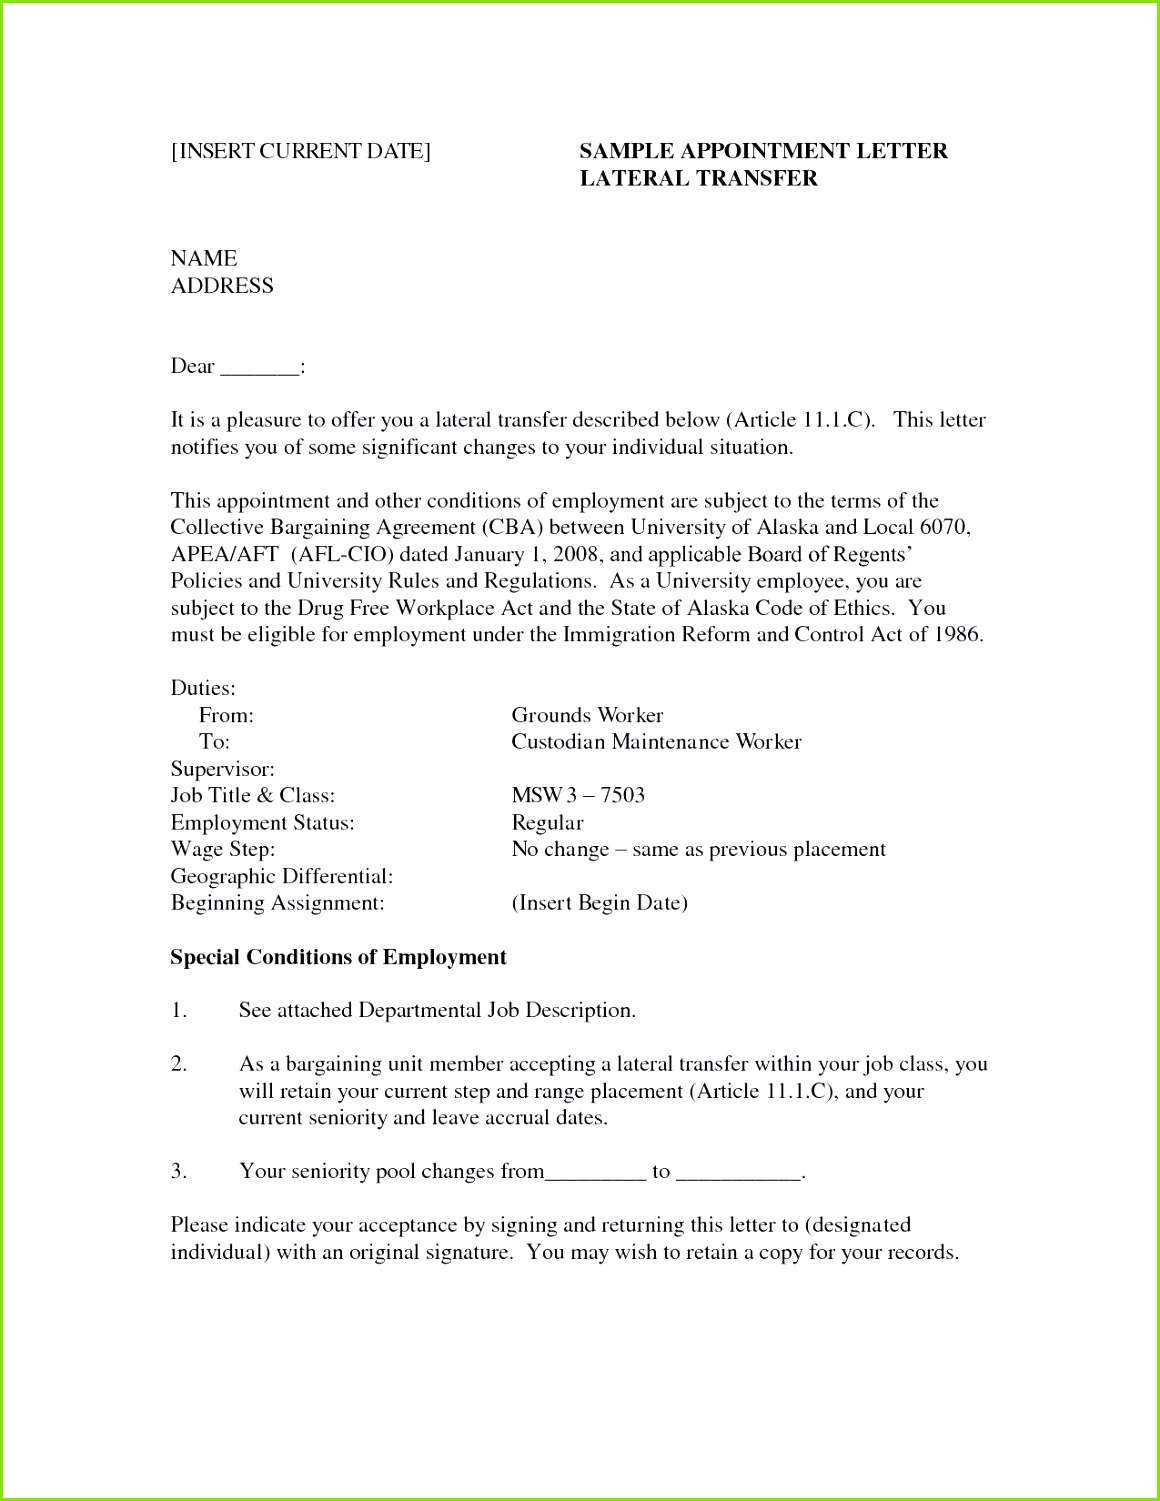 resumes and cover letters inspirational cover letter template word 2014 fresh relocation cover letters od of